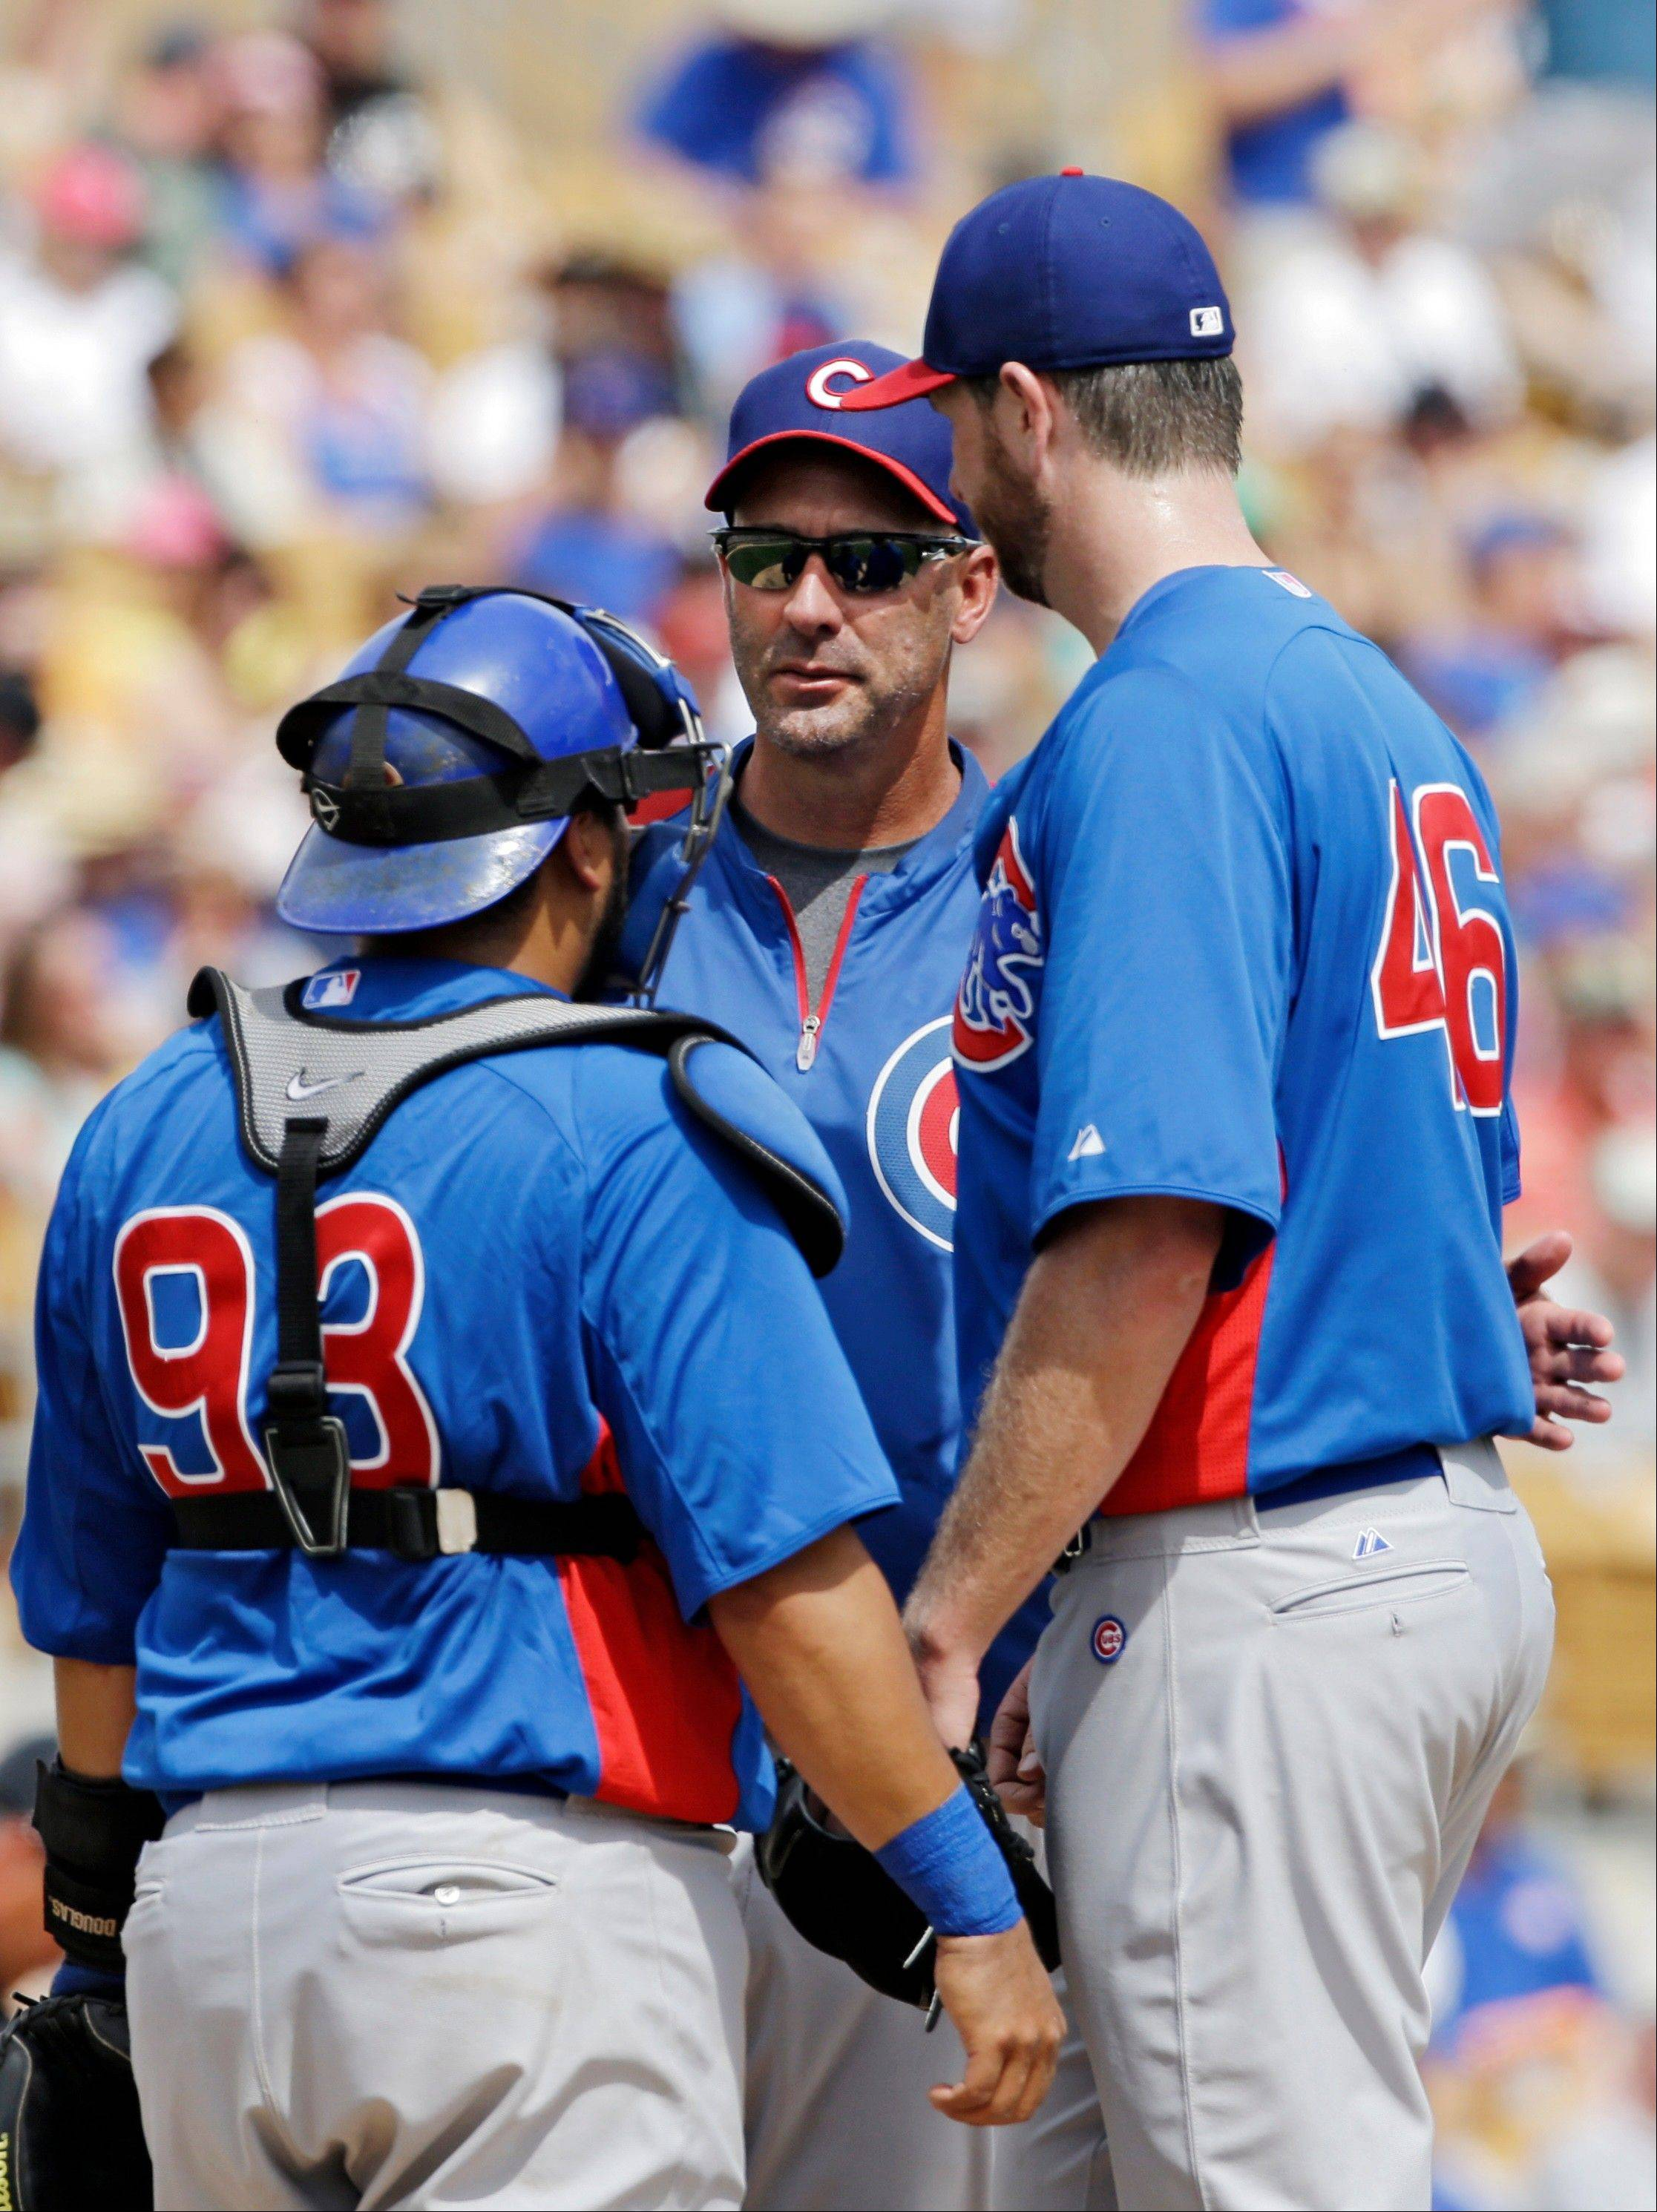 Chicago Cubs manager Dale Sveum, center, takes starting pitcher Scott Feldman out of an exhibition spring training baseball game against the Chicago White Sox in th fourth inning Friday, March 15, 2013, in Glendale, Ariz. Cubs catcher Dioner Navarro (93) listens in. (AP Photo/Mark Duncan)